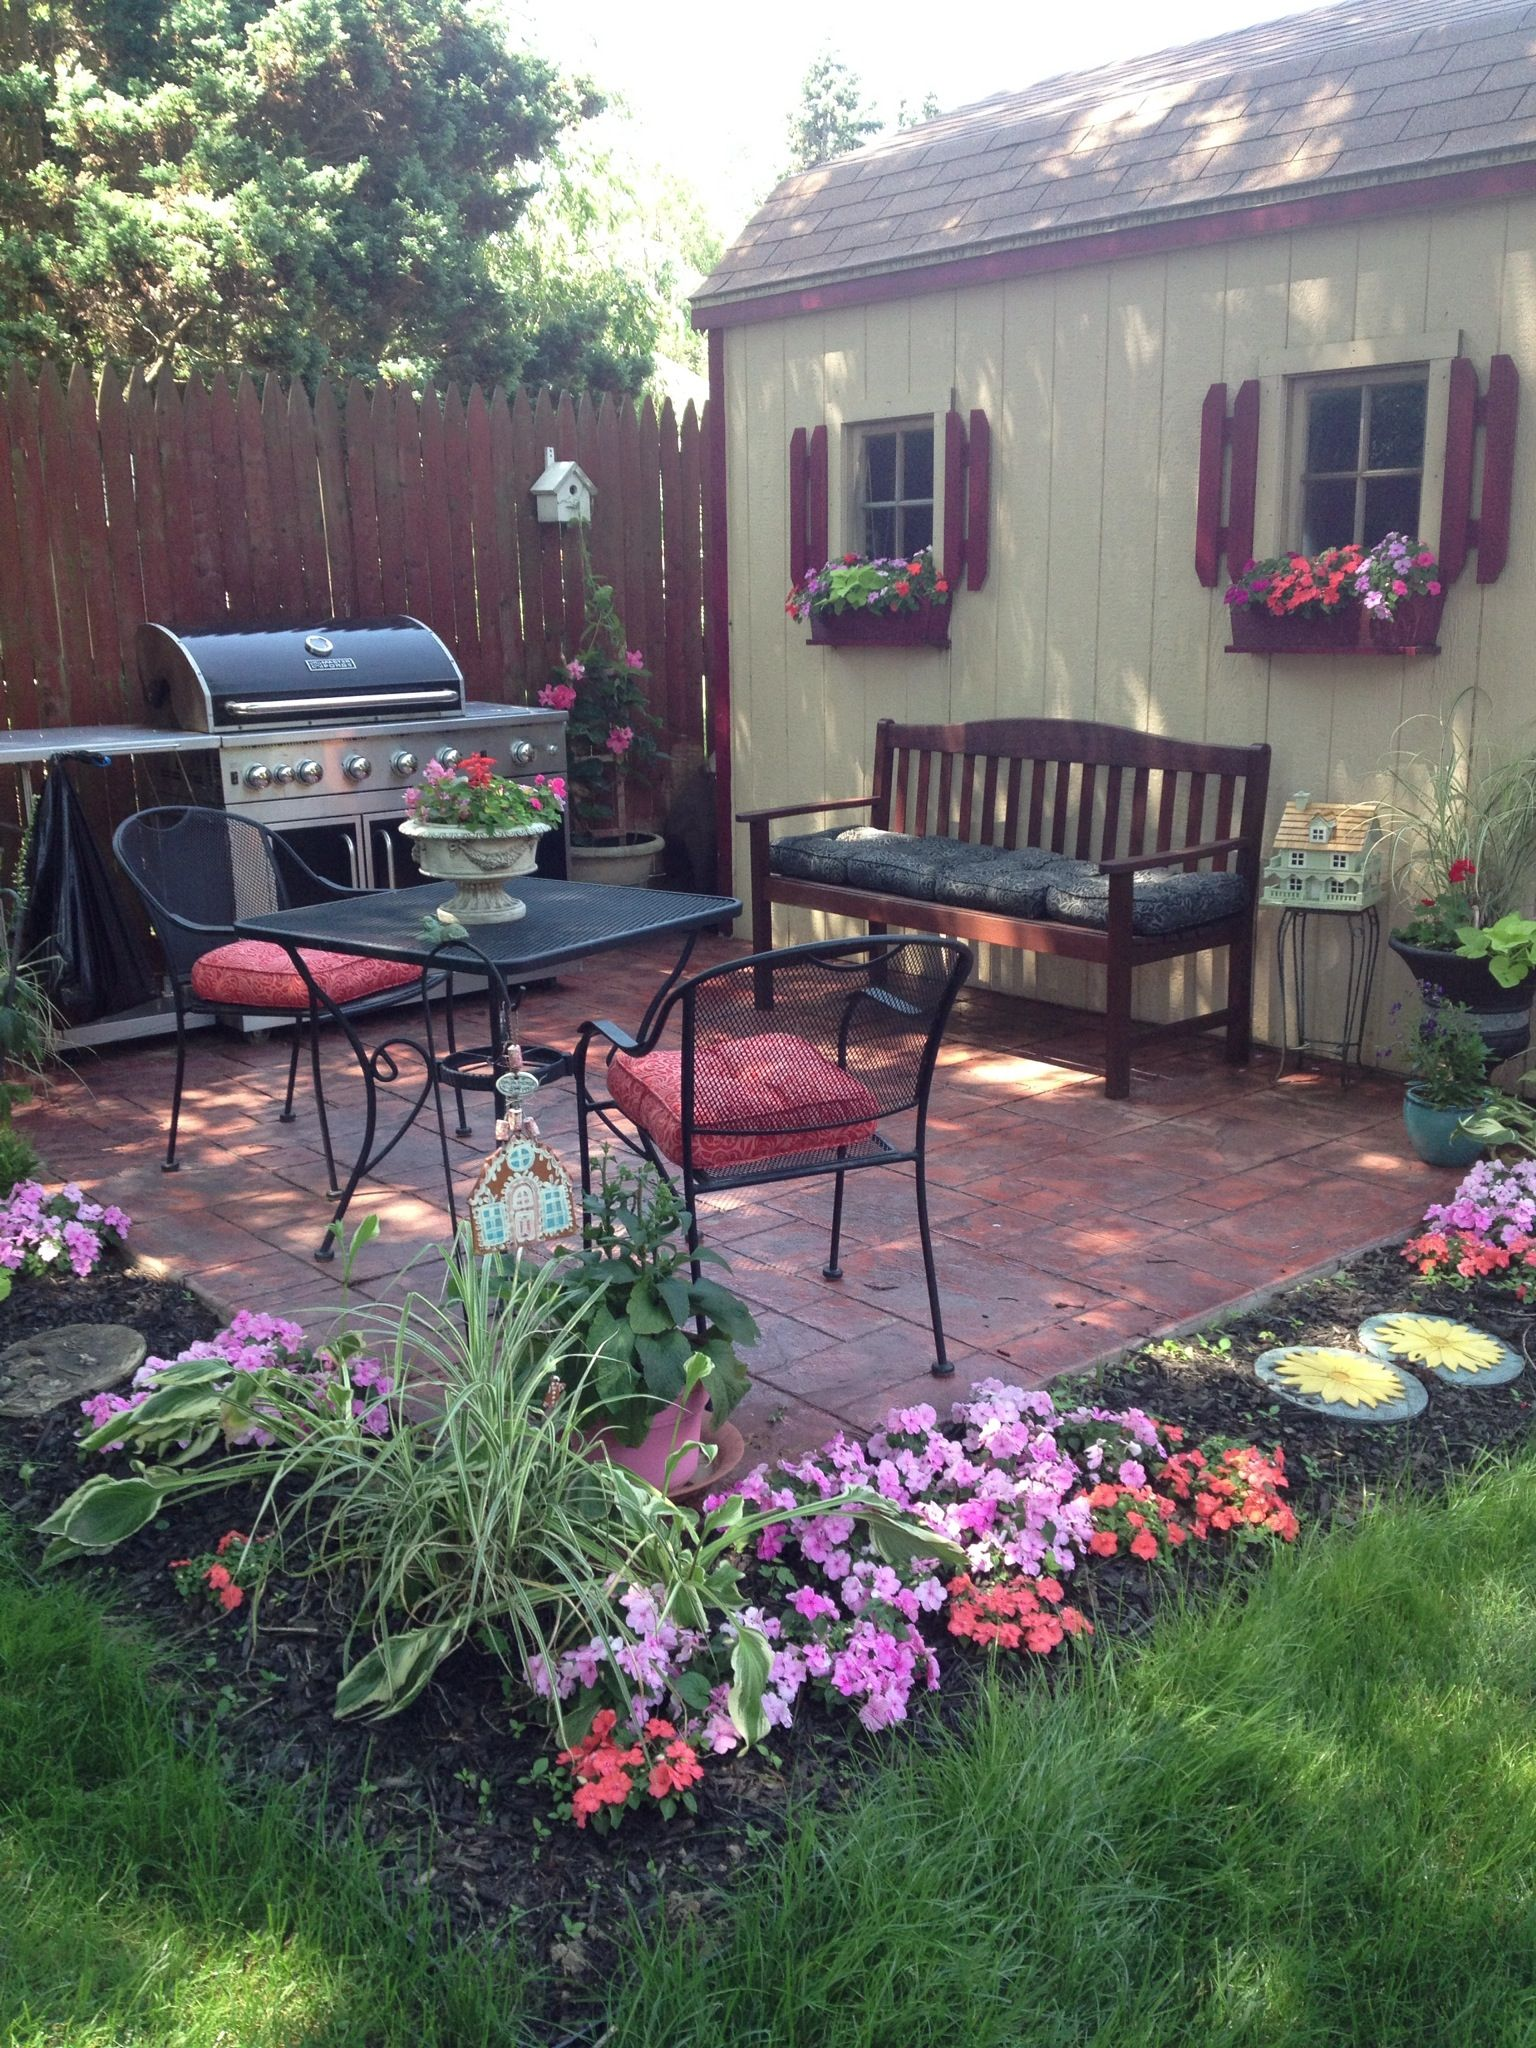 backyard cooking area backyard sitting areas on stunning backyard lighting design decor and remodel ideas sources to understand id=51930